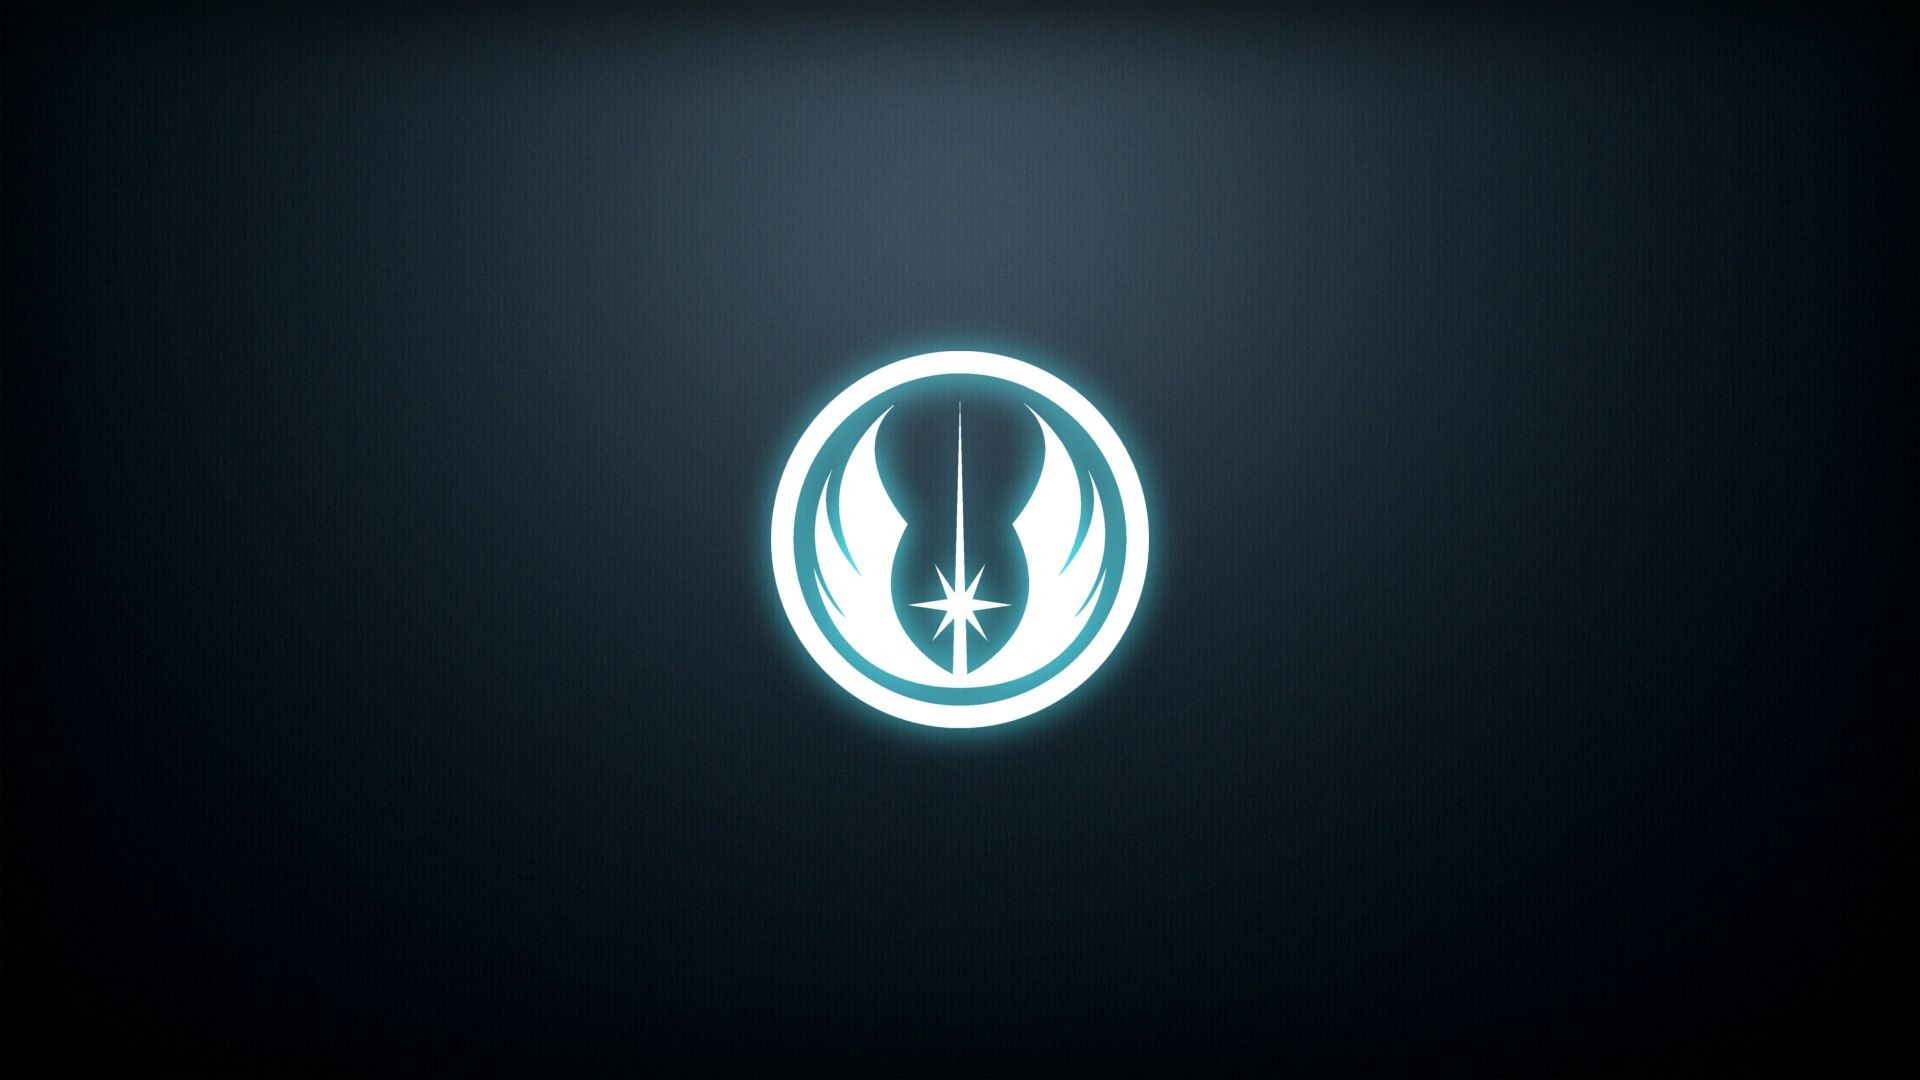 1920x1080 A wallpaper you guys might like. The Jedi Order emblem. I'll do a Sith one  too if people want me to. [].